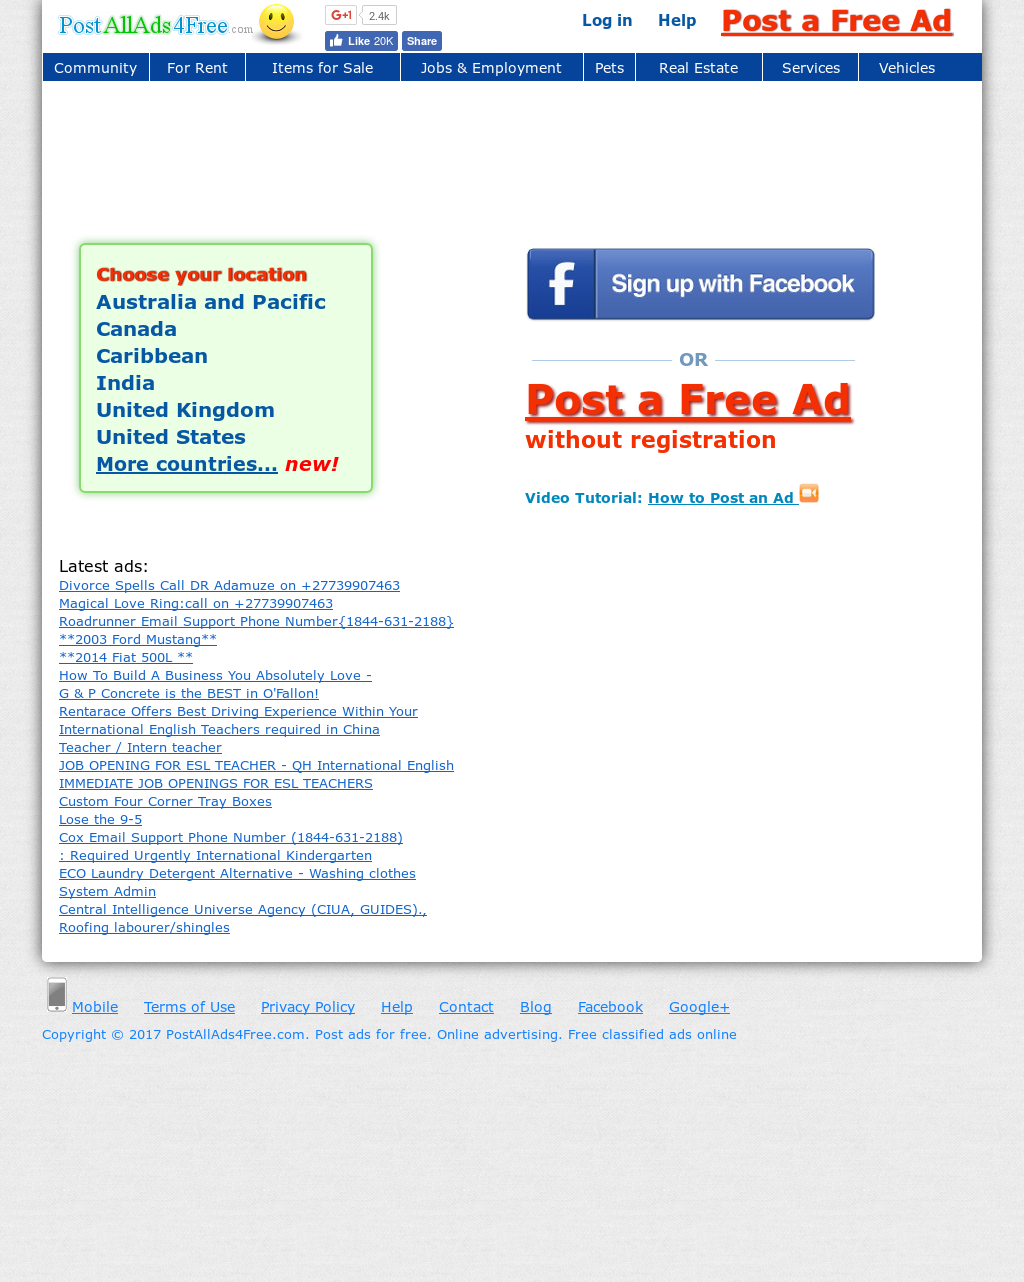 Postallads4free com  Post Ads For Free  Online Advertising  Free